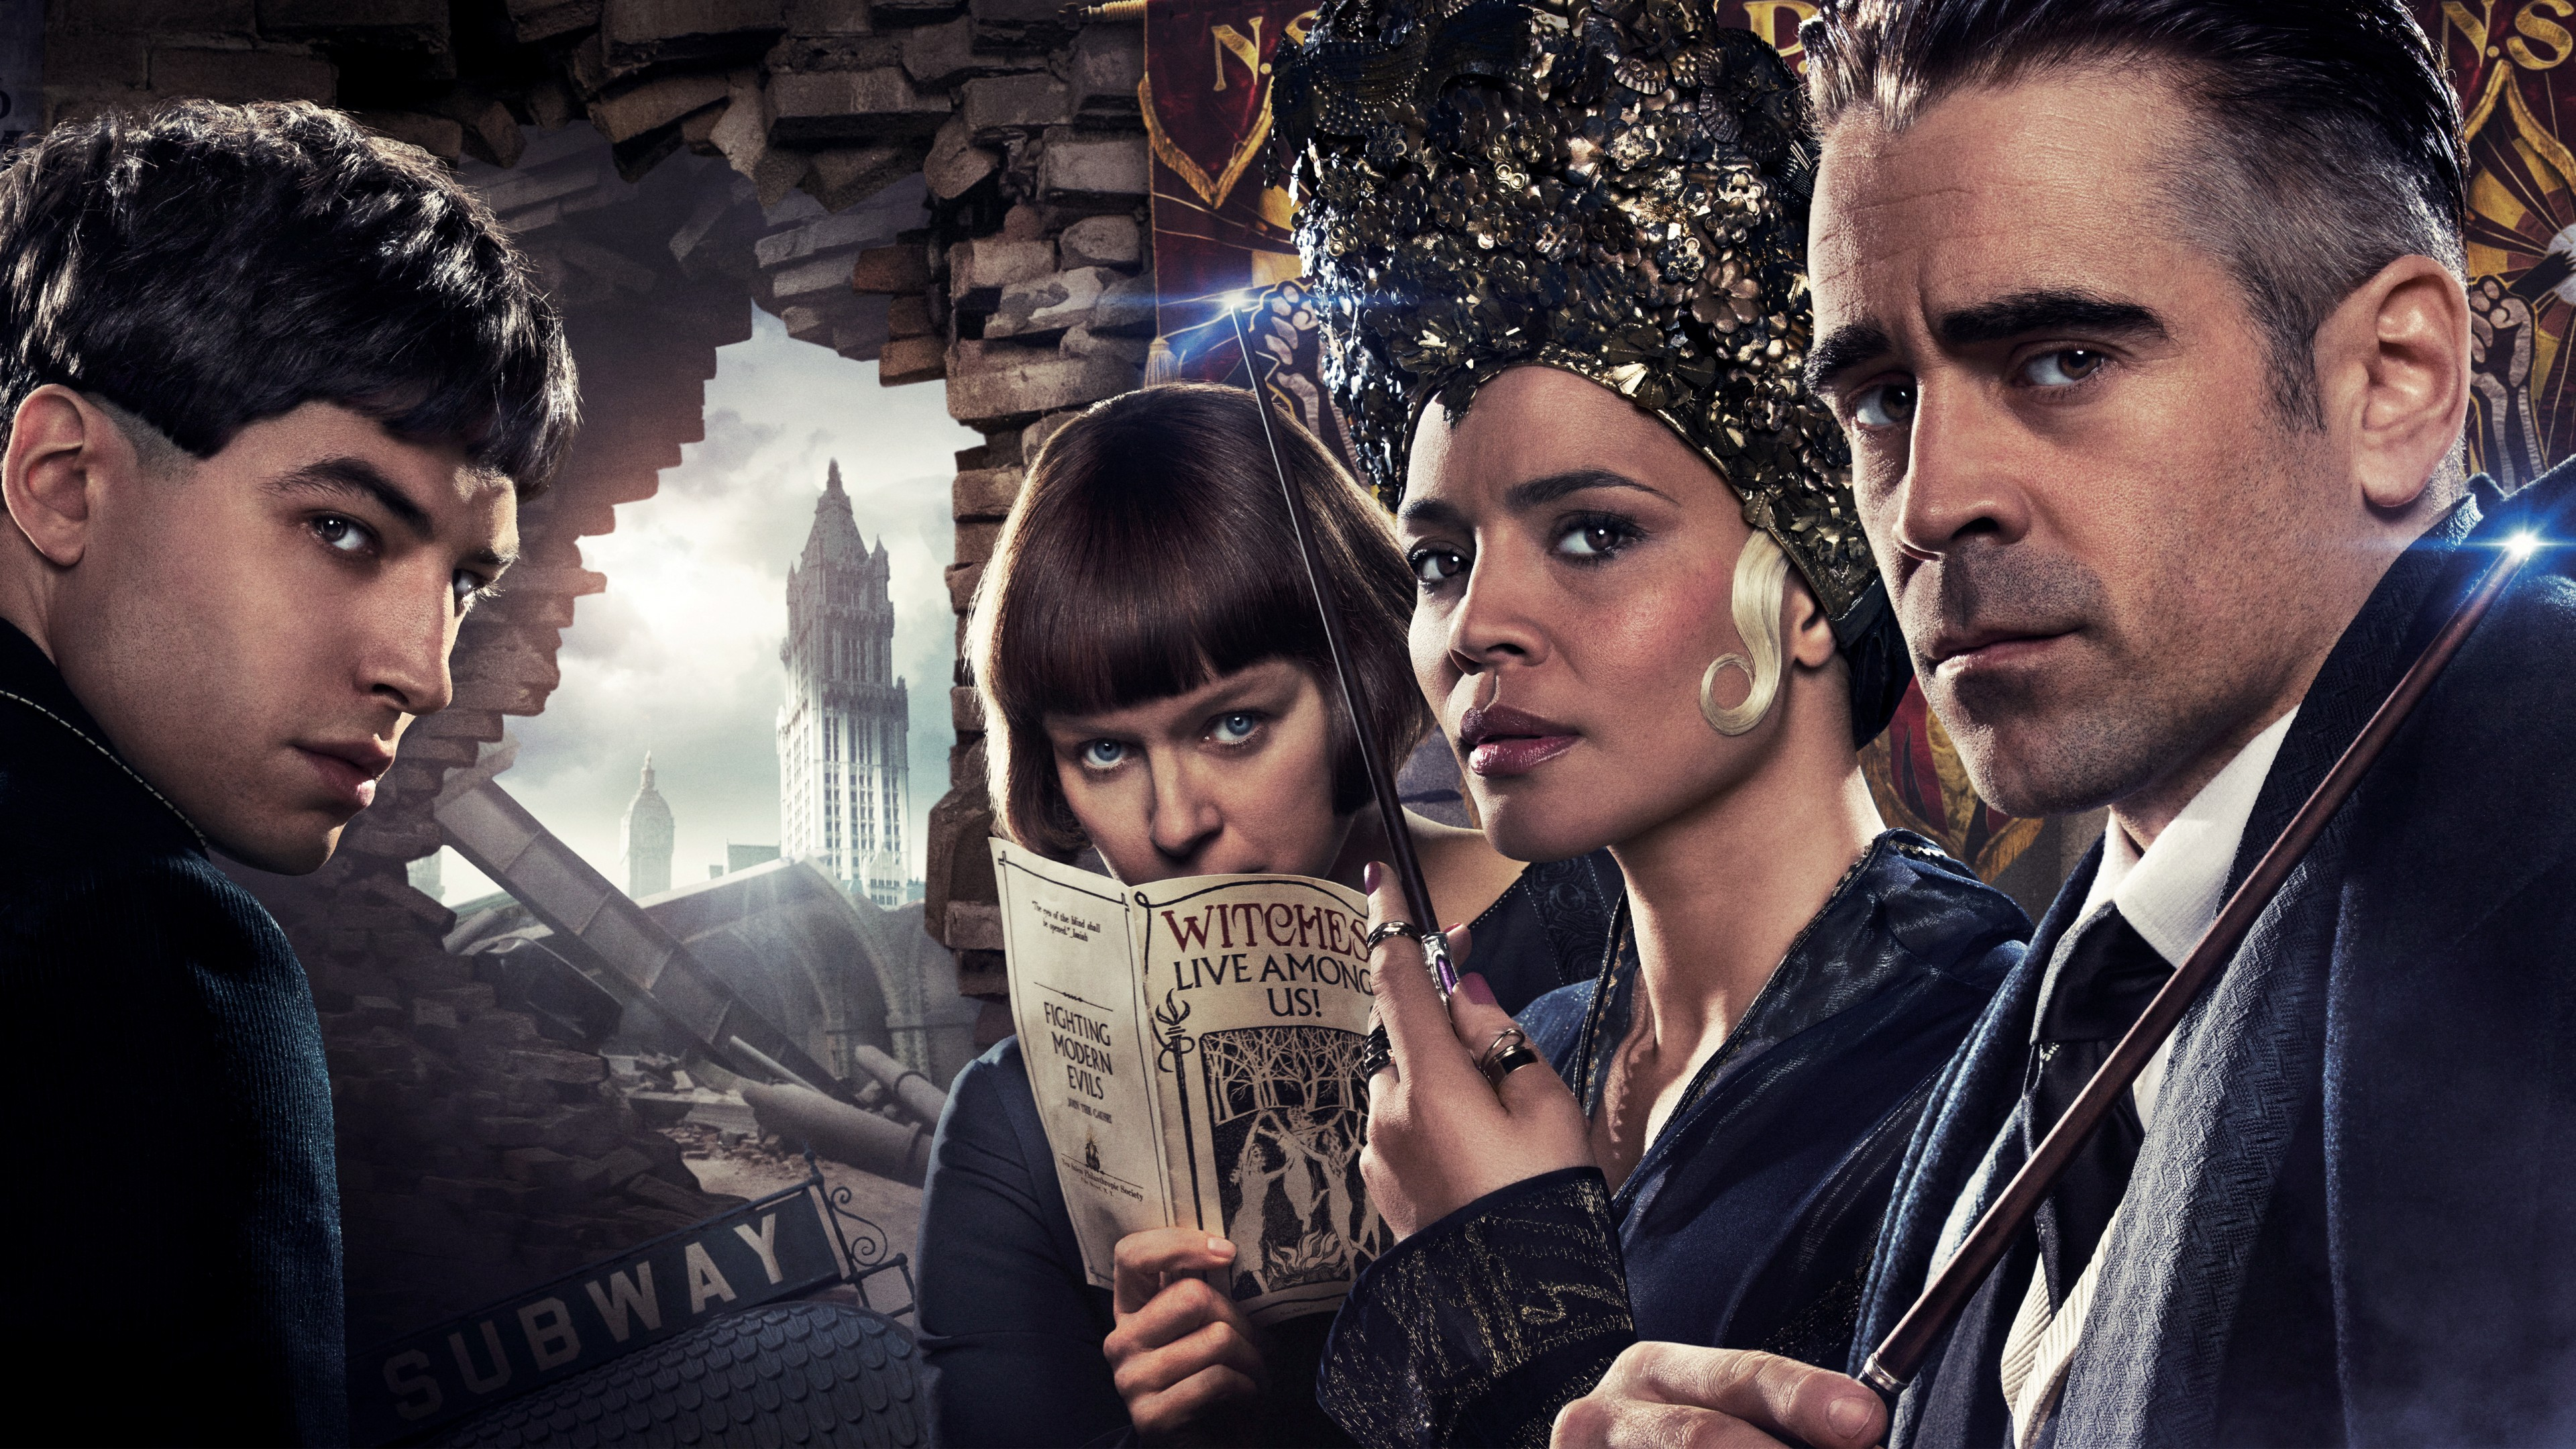 Fantastic Beasts And Where To Find Them Hd Hd Movies 4k